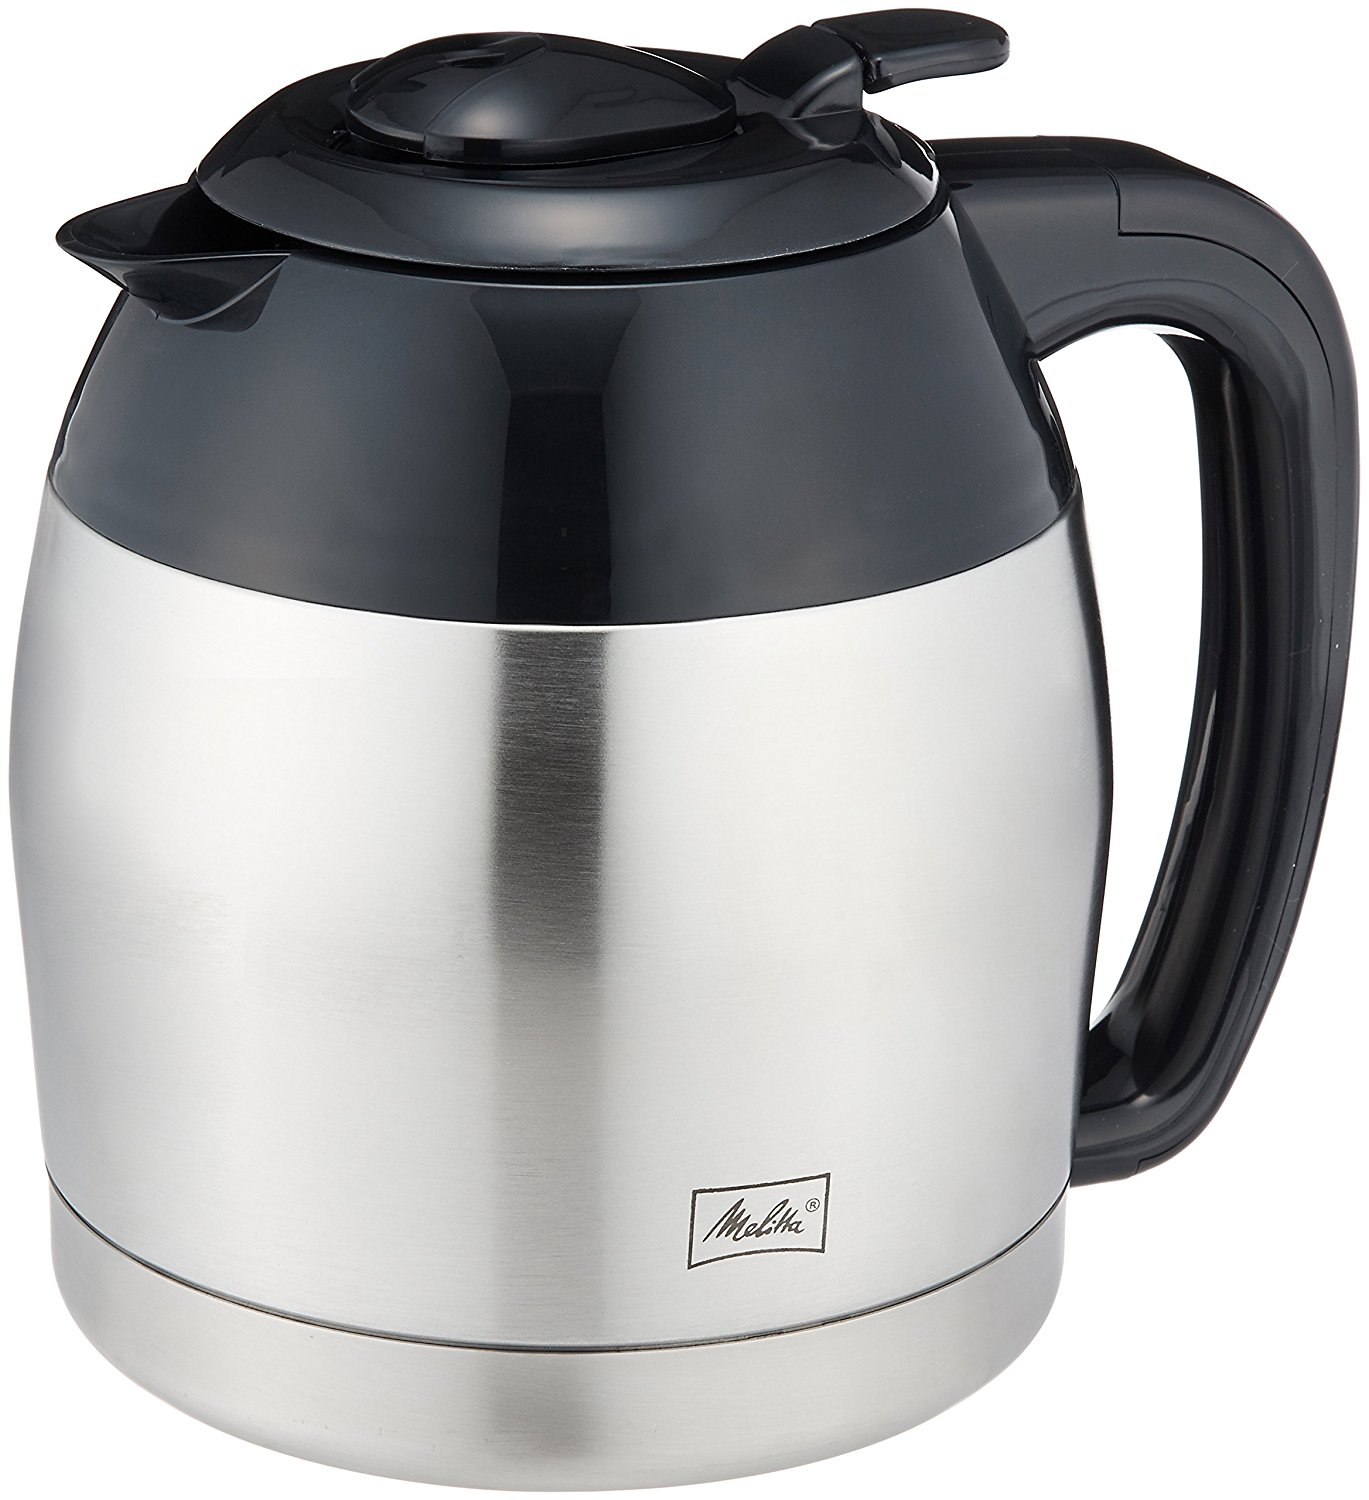 Melitta replacement pot TJ-1031